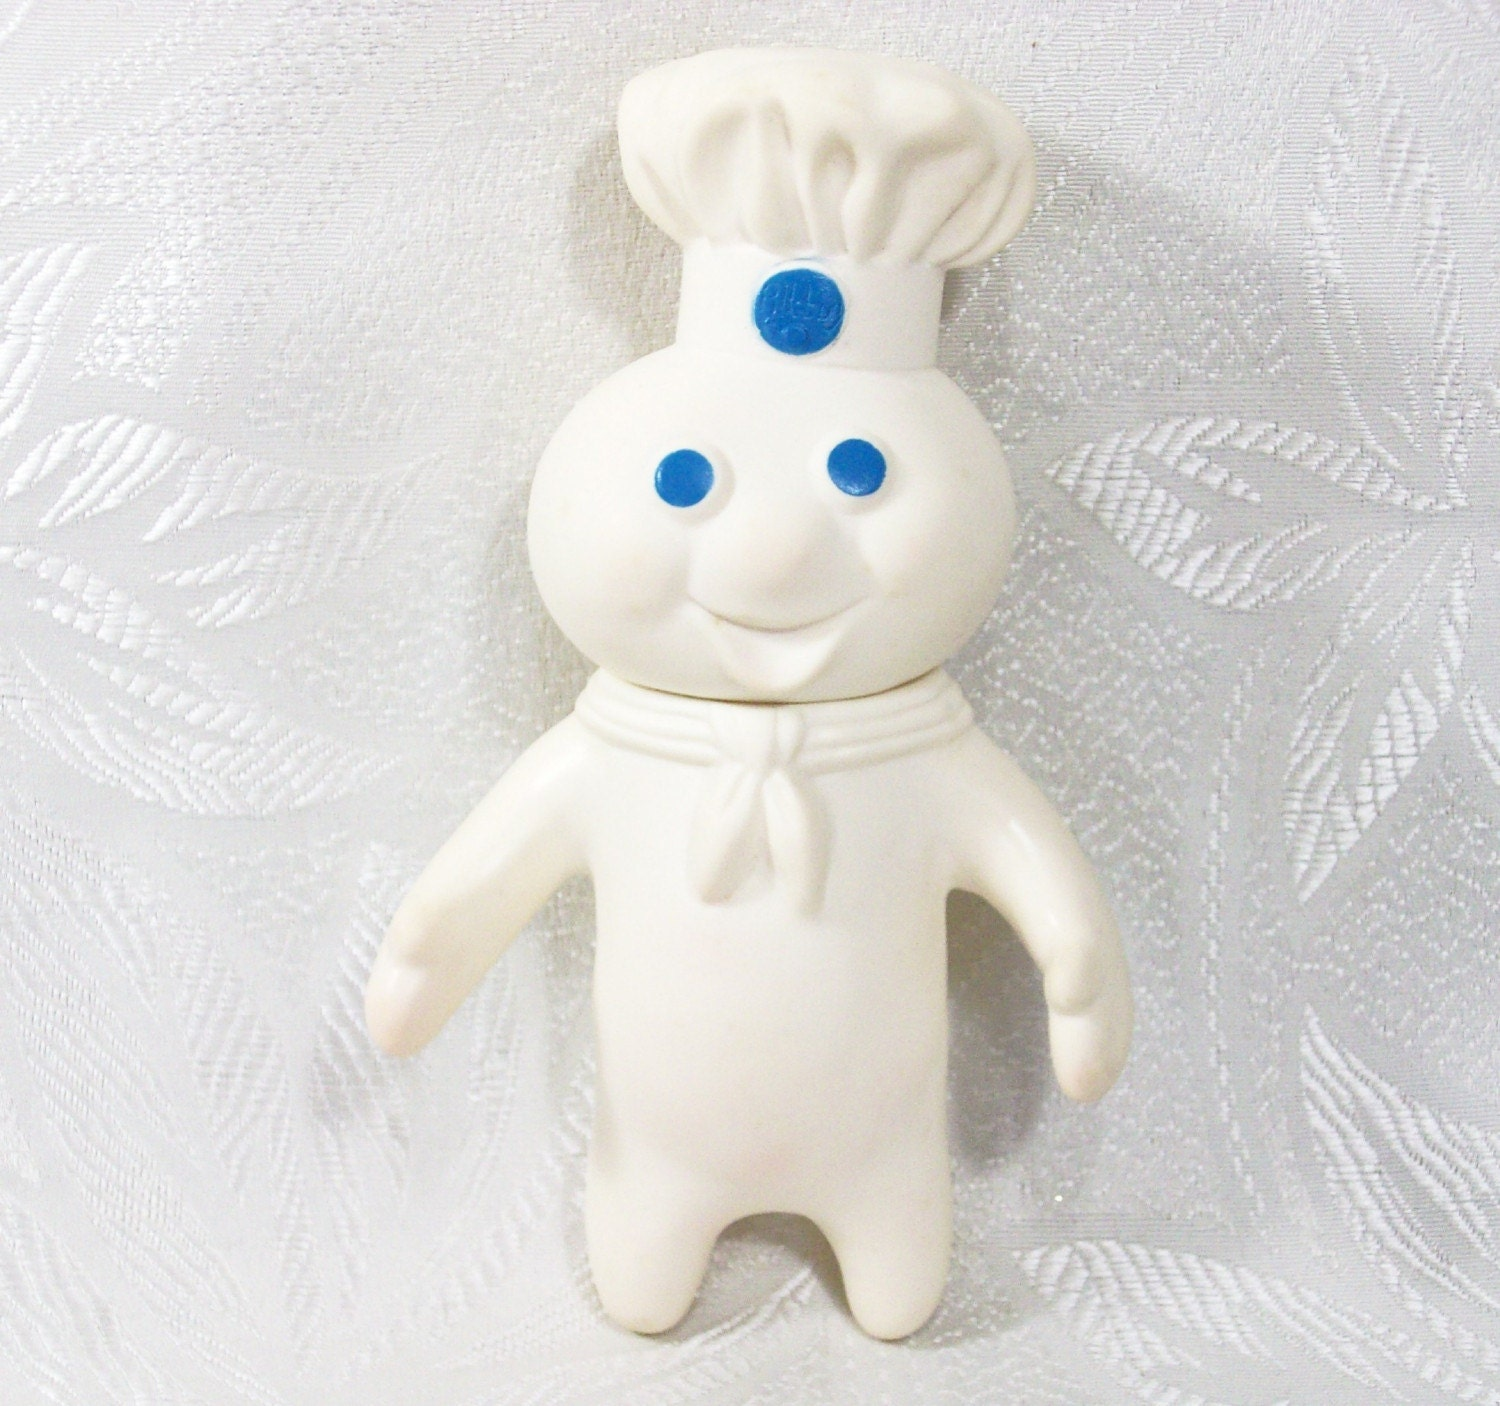 1971 Vintage Pillsbury Doughboy Doll Toy Figure White Blue